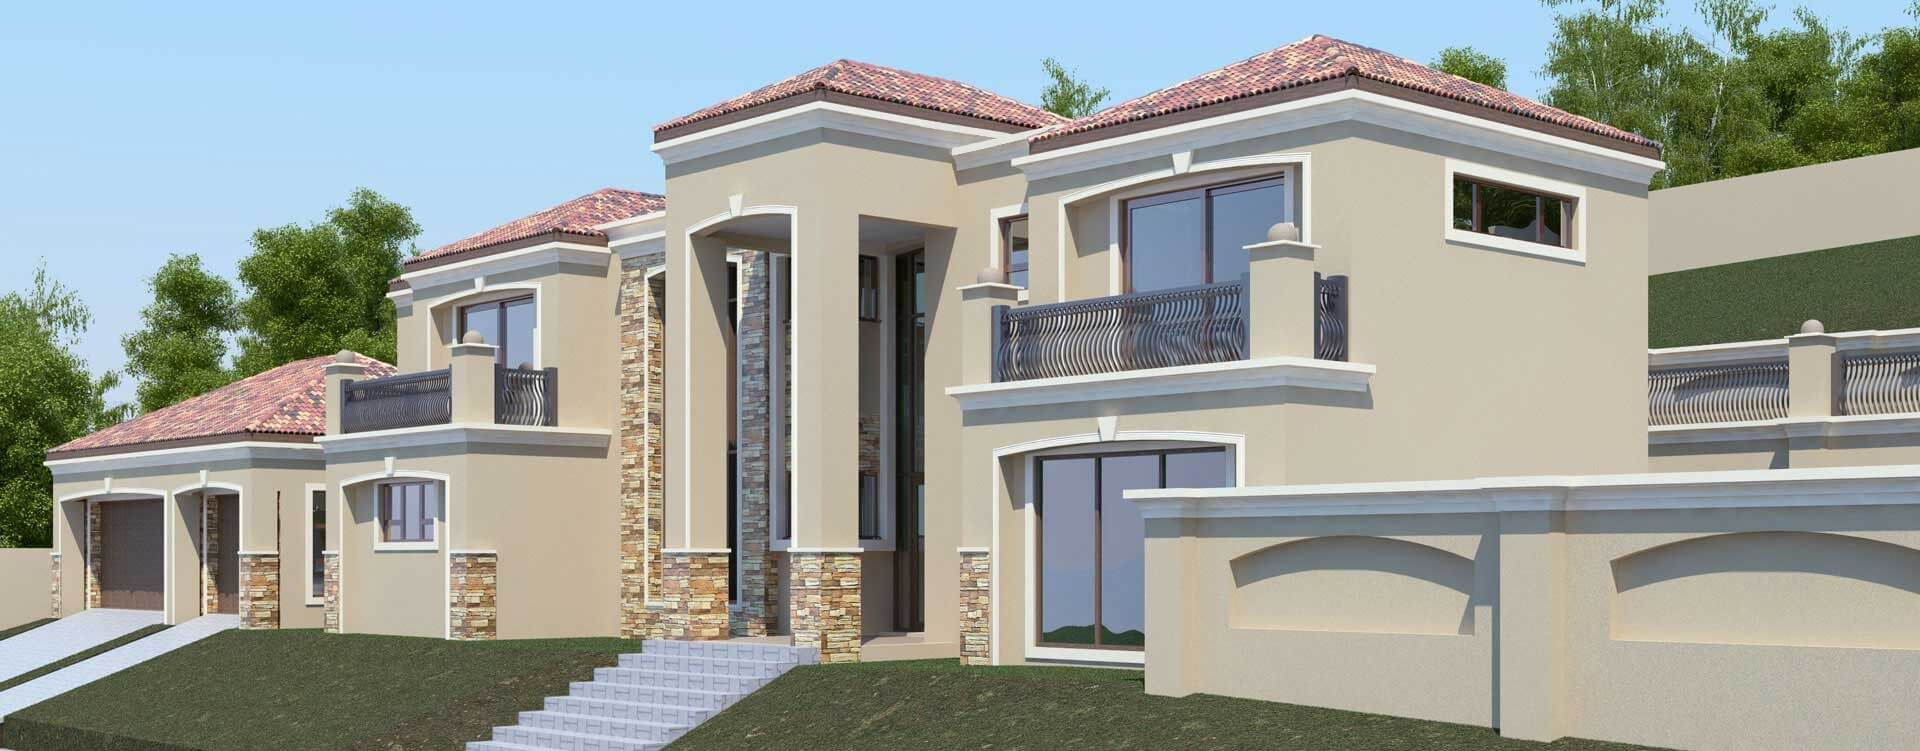 modern tuscan style 5 bedroom house plan double storey floor plans nethouseplans architectural - Modern House Designs Single Floor